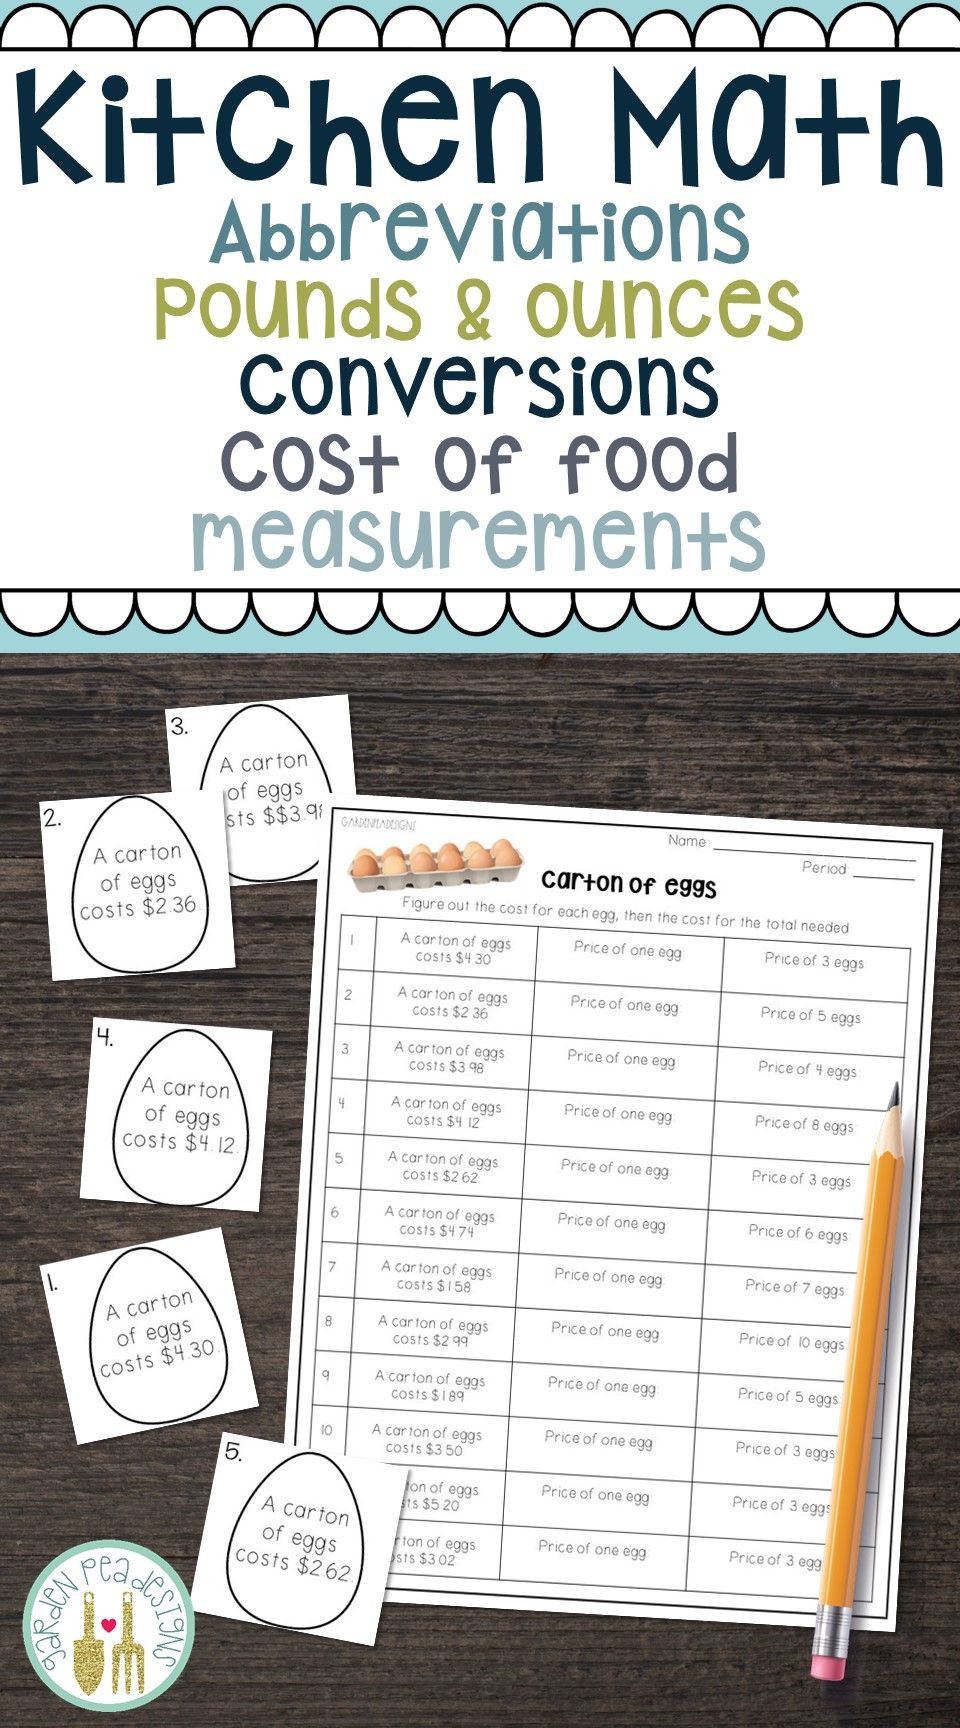 Kitchen Math Worksheets $5 00 Teach Kitchen Abbreviations How to Convert Pounds to